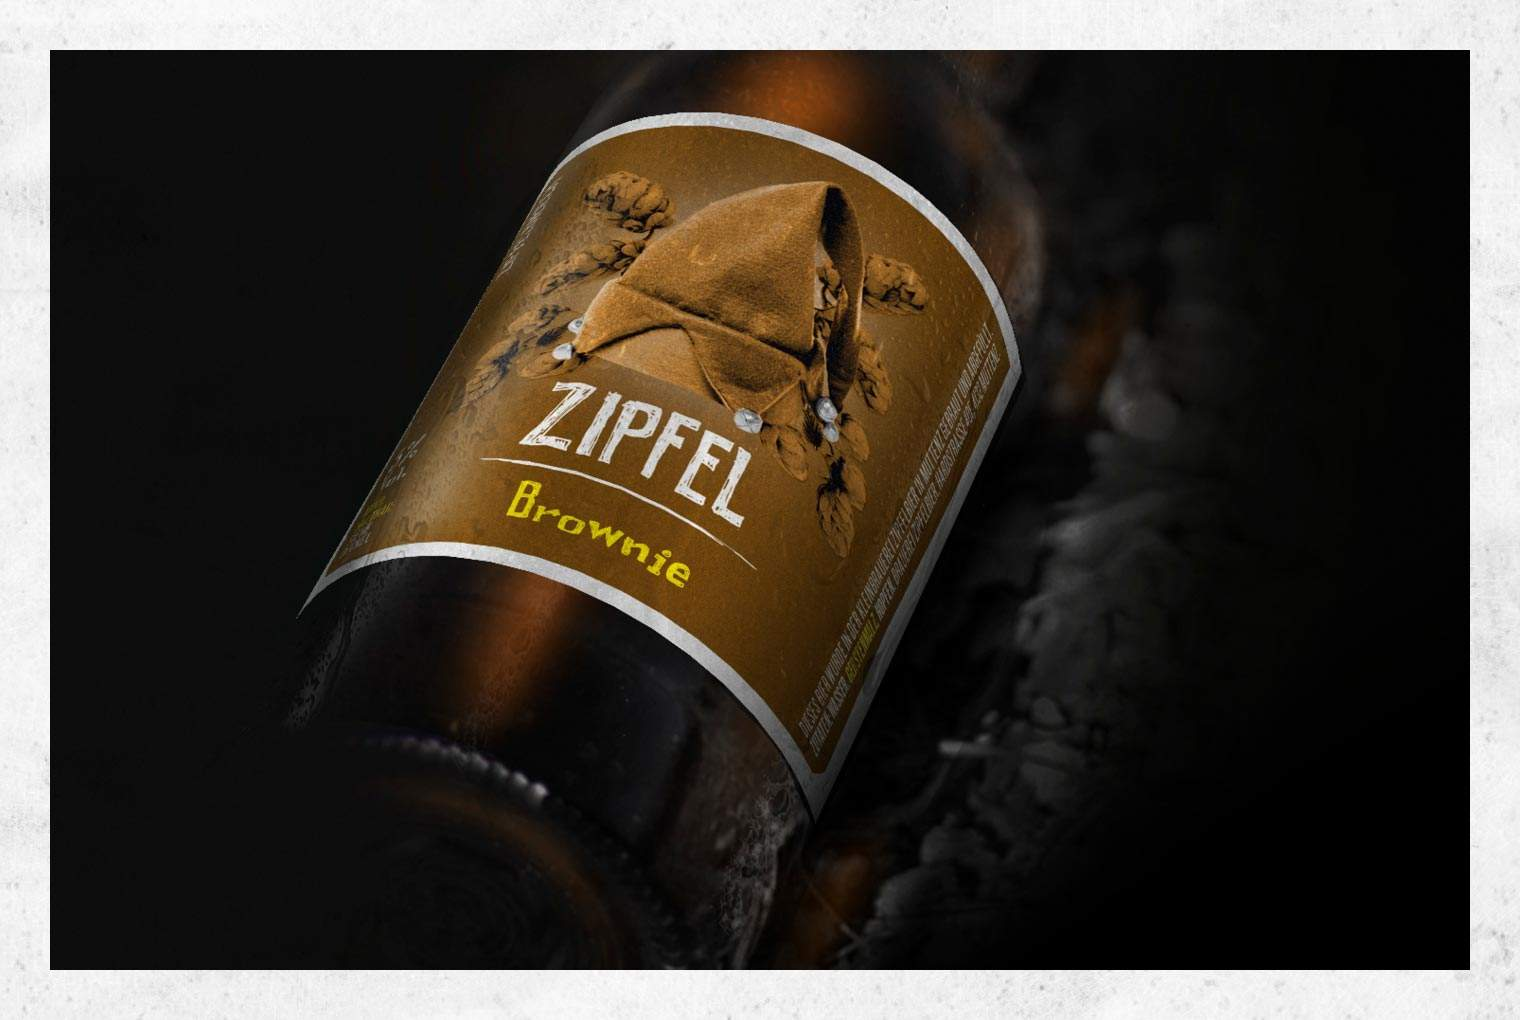 zipfel_bier_brownie